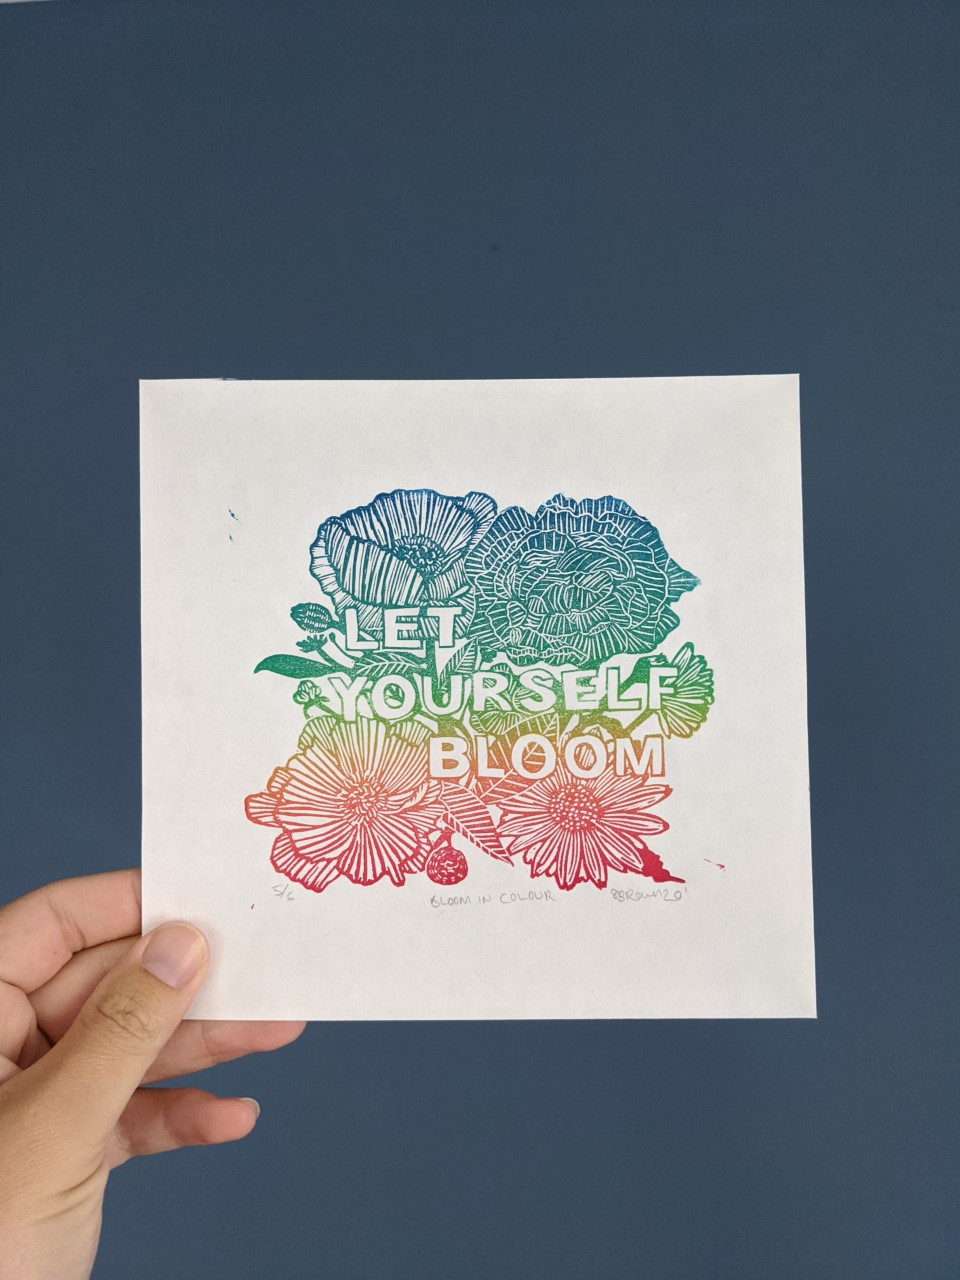 shelly brown illustration let yourself bloom inspiration quote linocut print